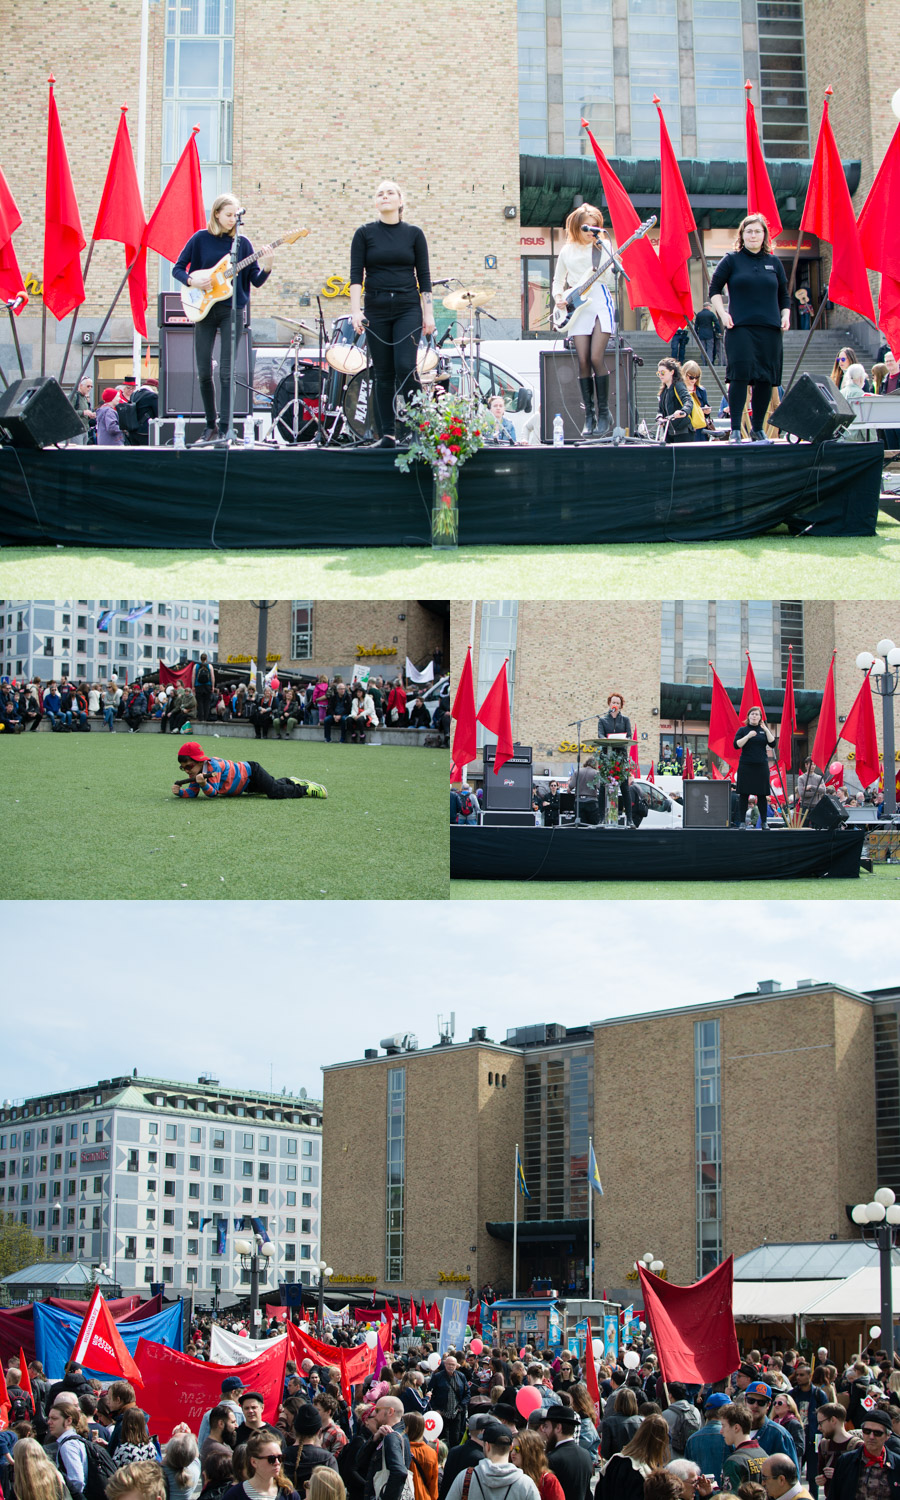 Stockholm May Day